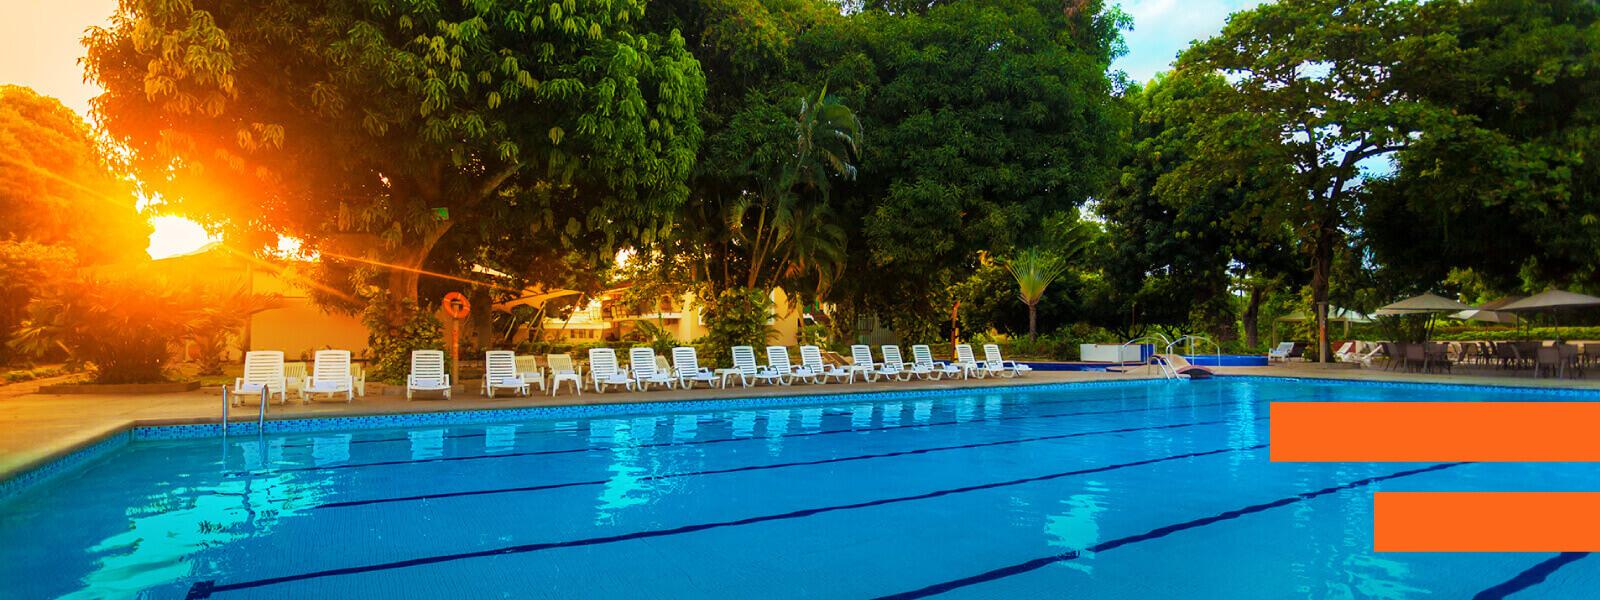 Escape during the week! - GHL Relax Hotel Club El Puente - Girardot